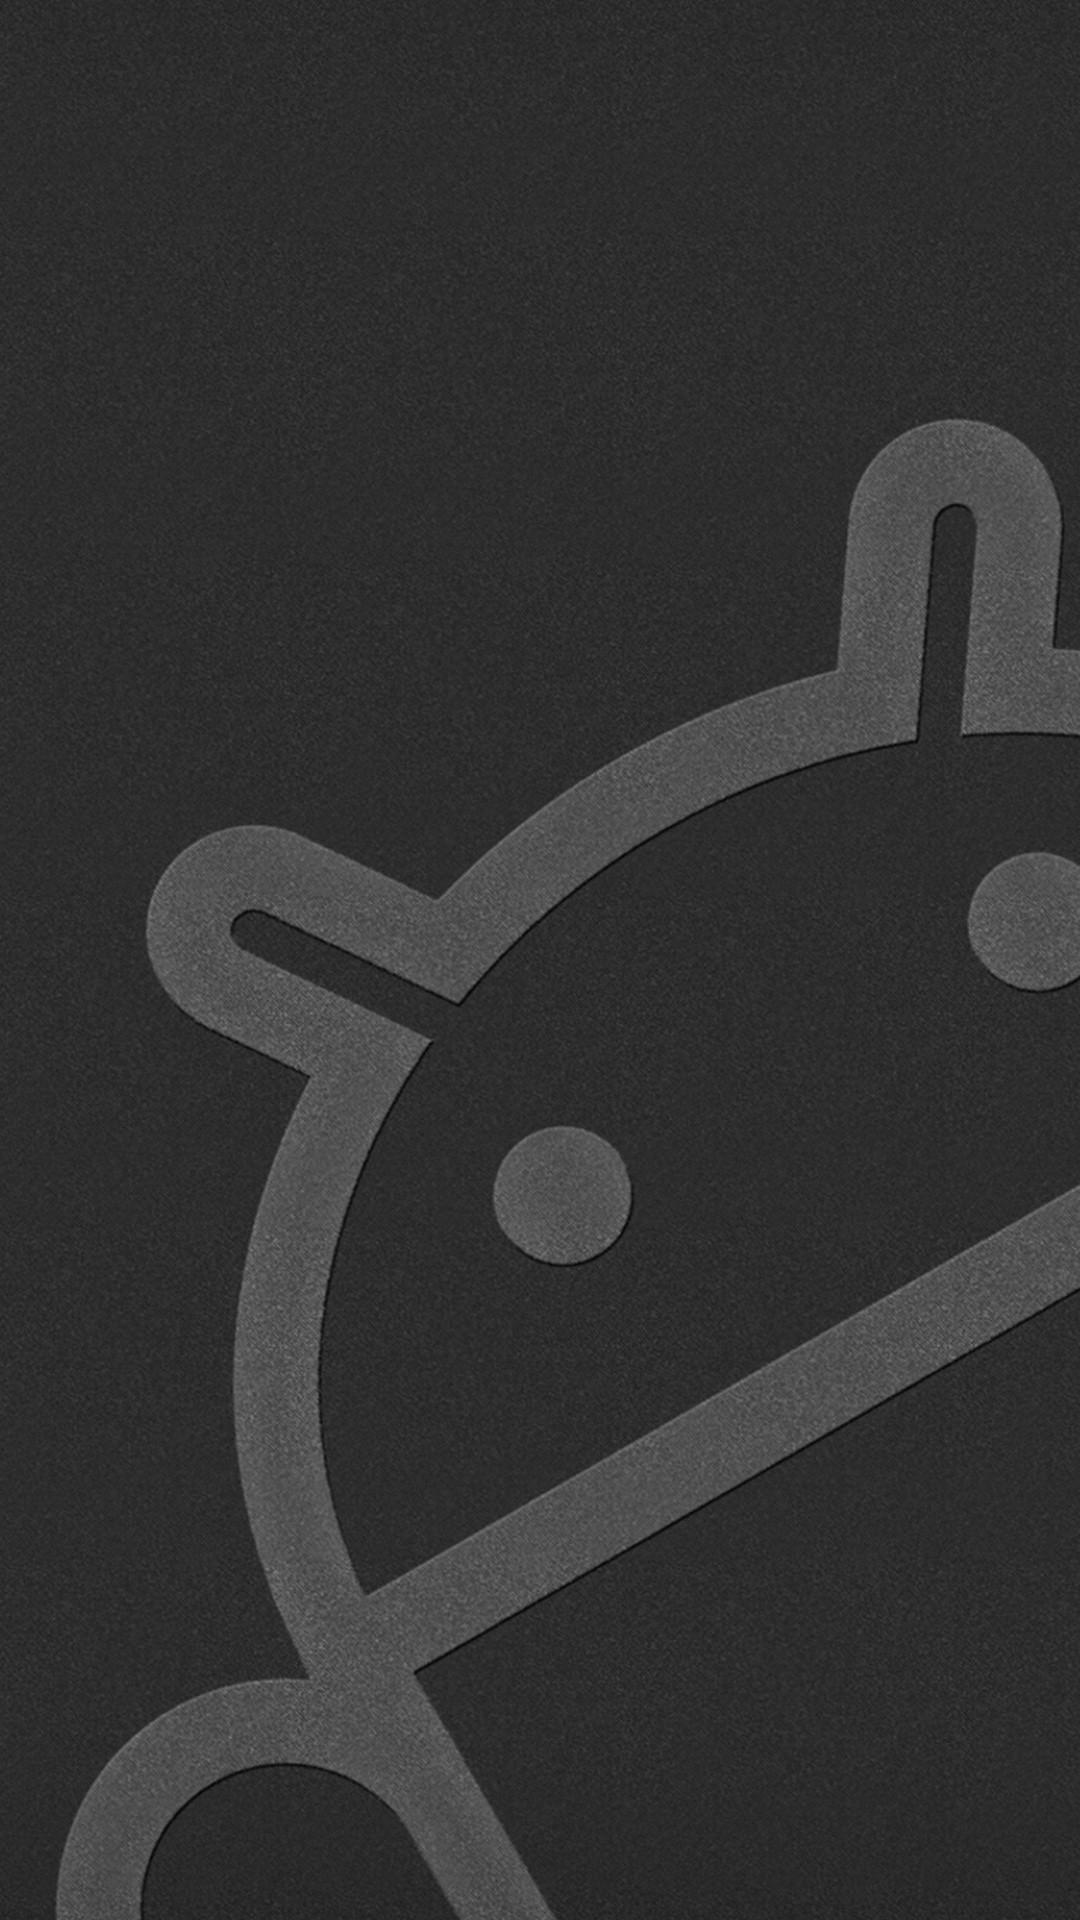 Black Logo Android Wallpapers - Wallpaper Cave